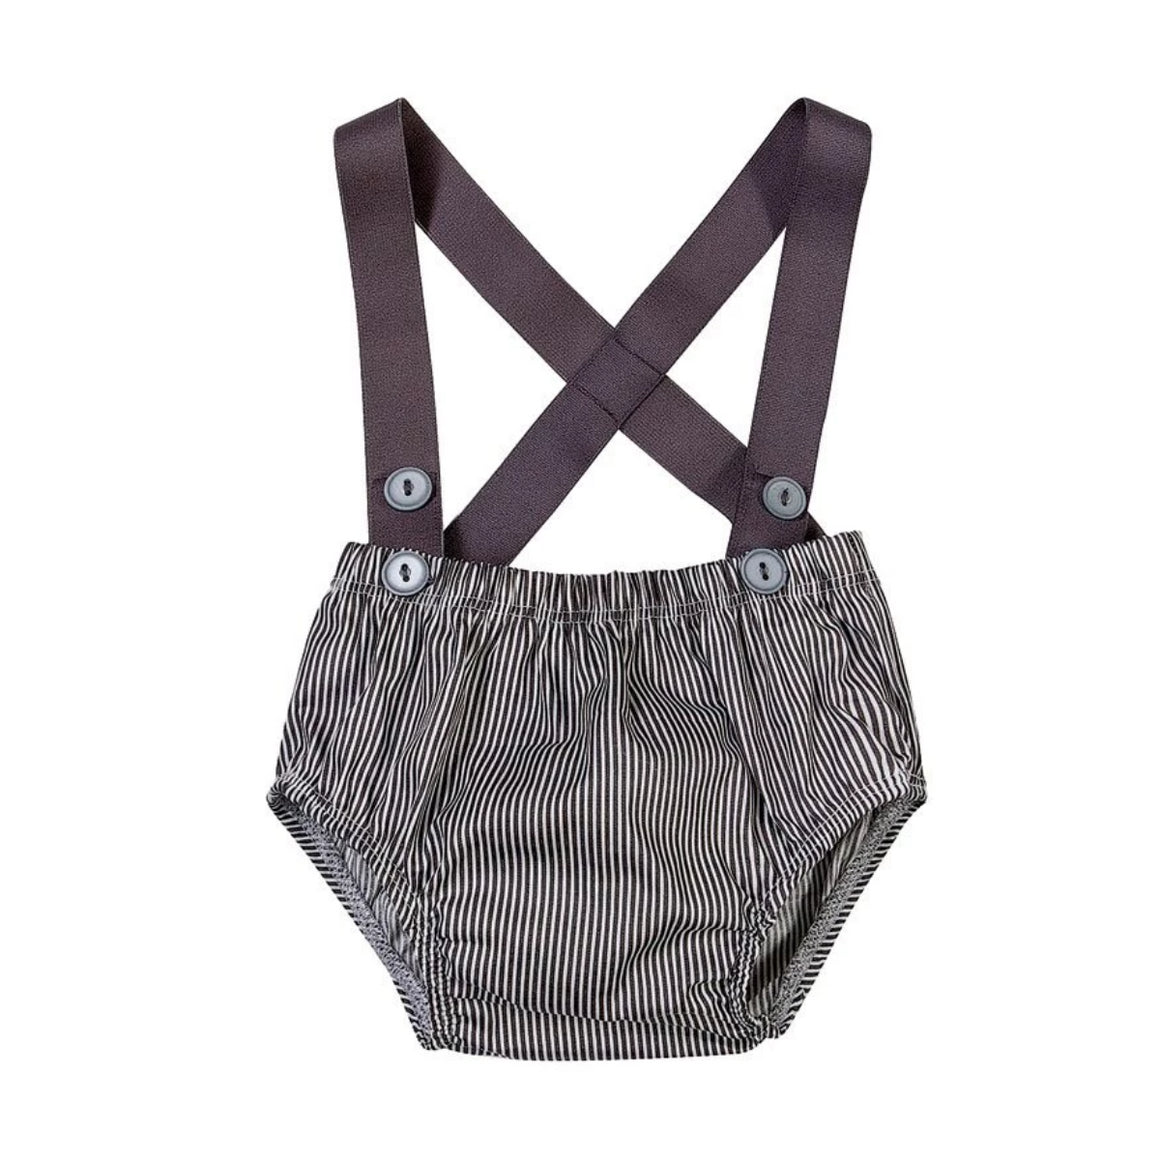 Charcoal & White stripe Boys Playsuit - Razberry Kids Co